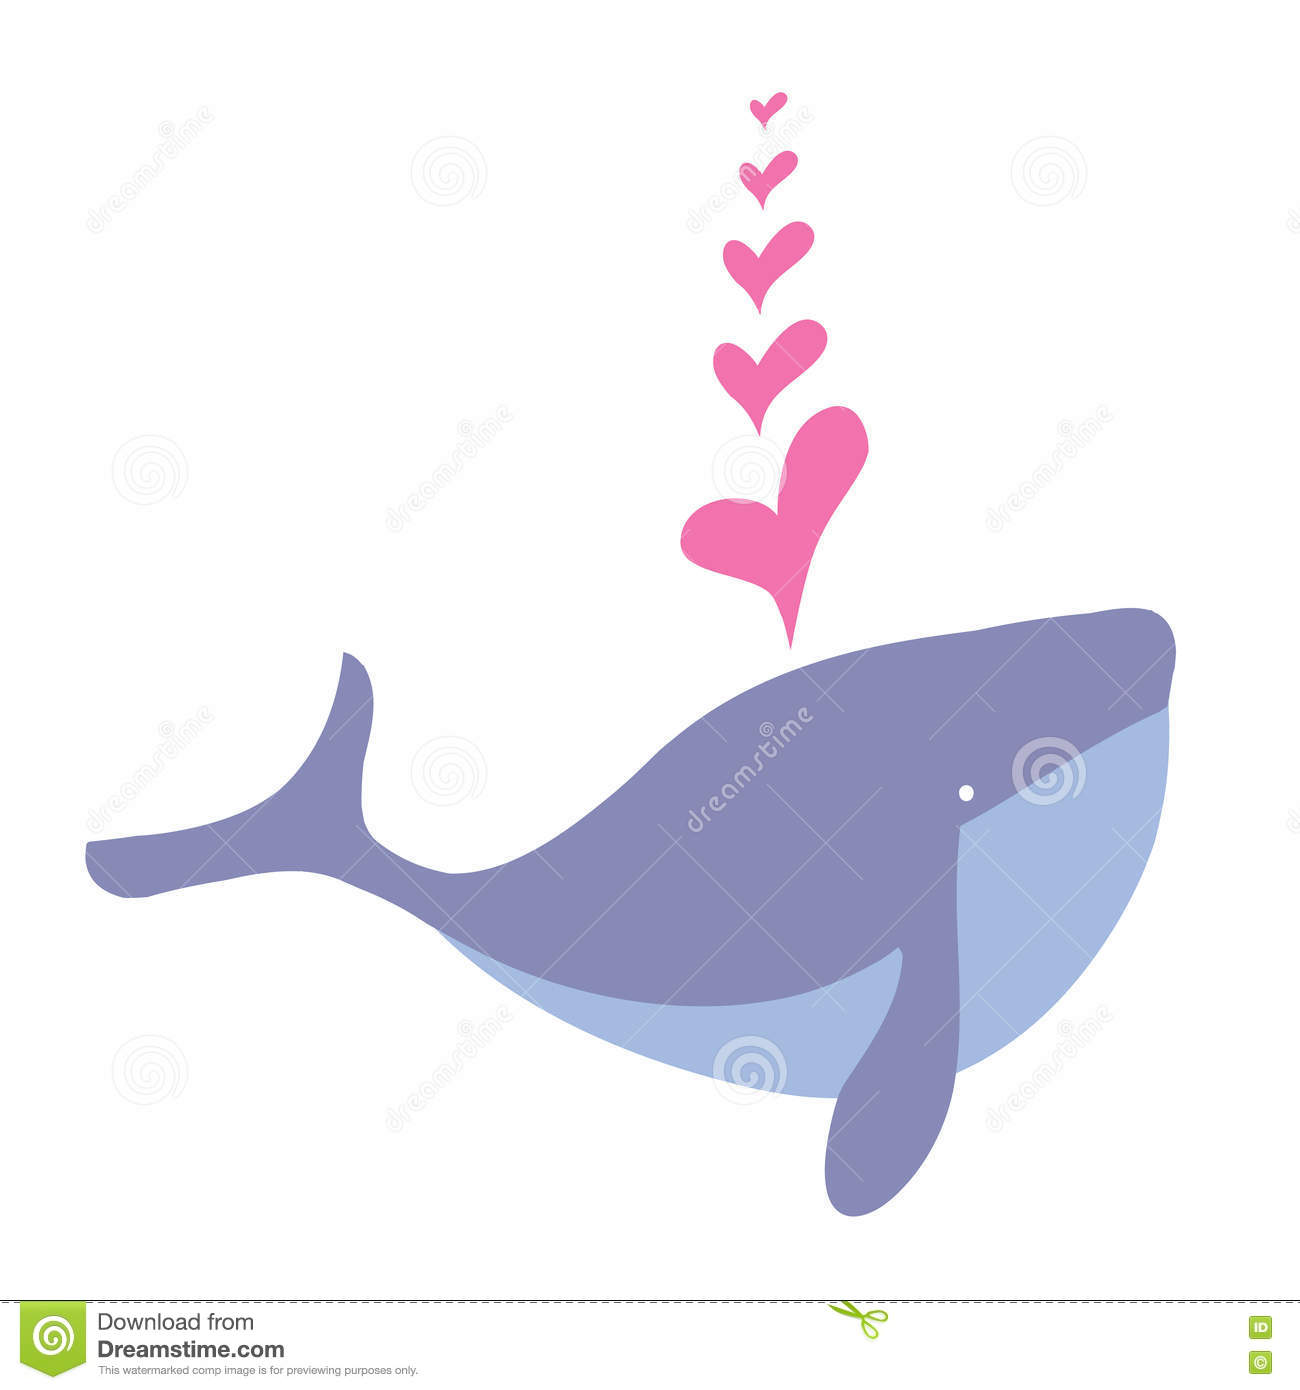 Cute whale in water cartoon isolated illustration stock photography - Cartoon Cute Fin Mammal Underwater Water Whale